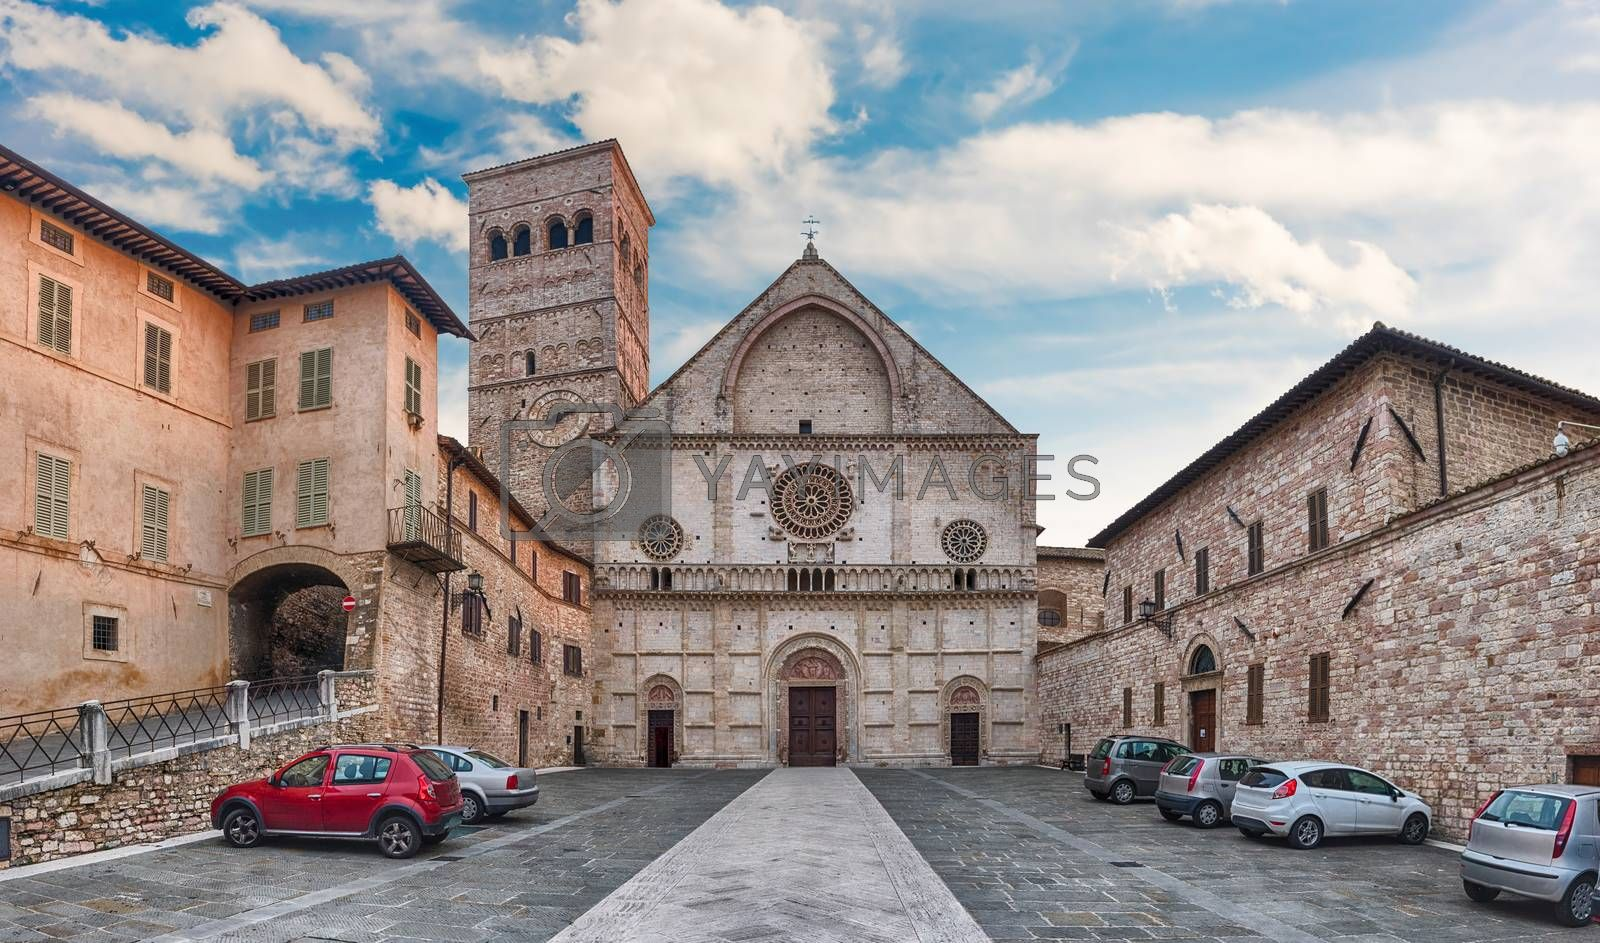 Panoramic view with facade of the medieval Cathedral of Assisi, Italy. The church is dedicated to San Rufino